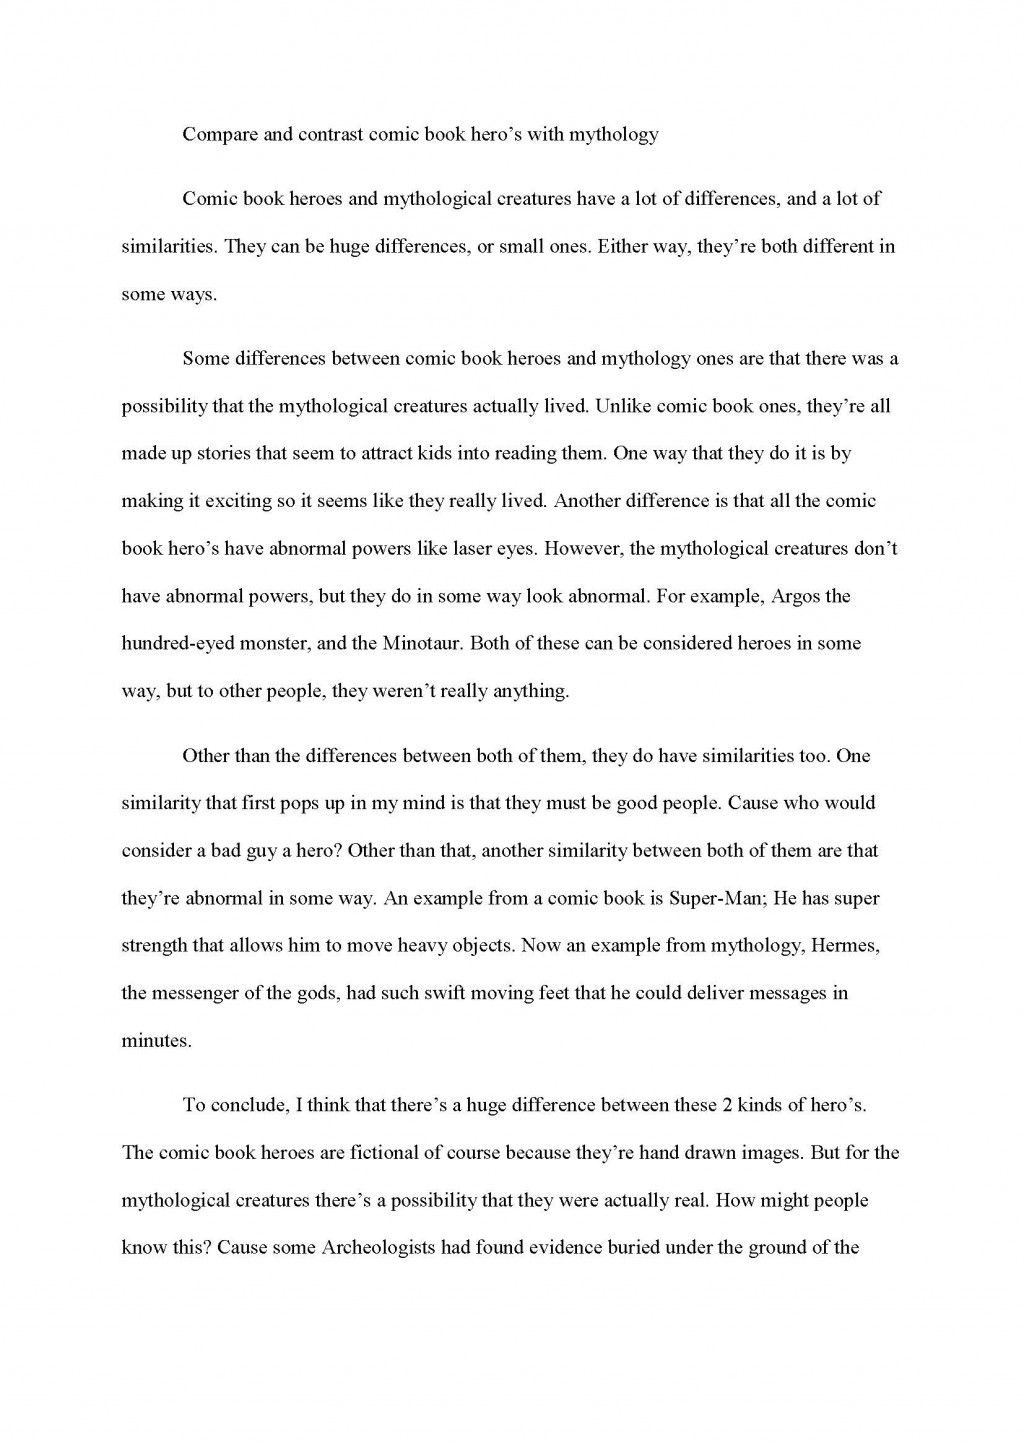 014 Essay Example Compared Contrast Sample How To Start Of Breathtaking An Argumentative About Yourself For Scholarship Analysis On A Book Large